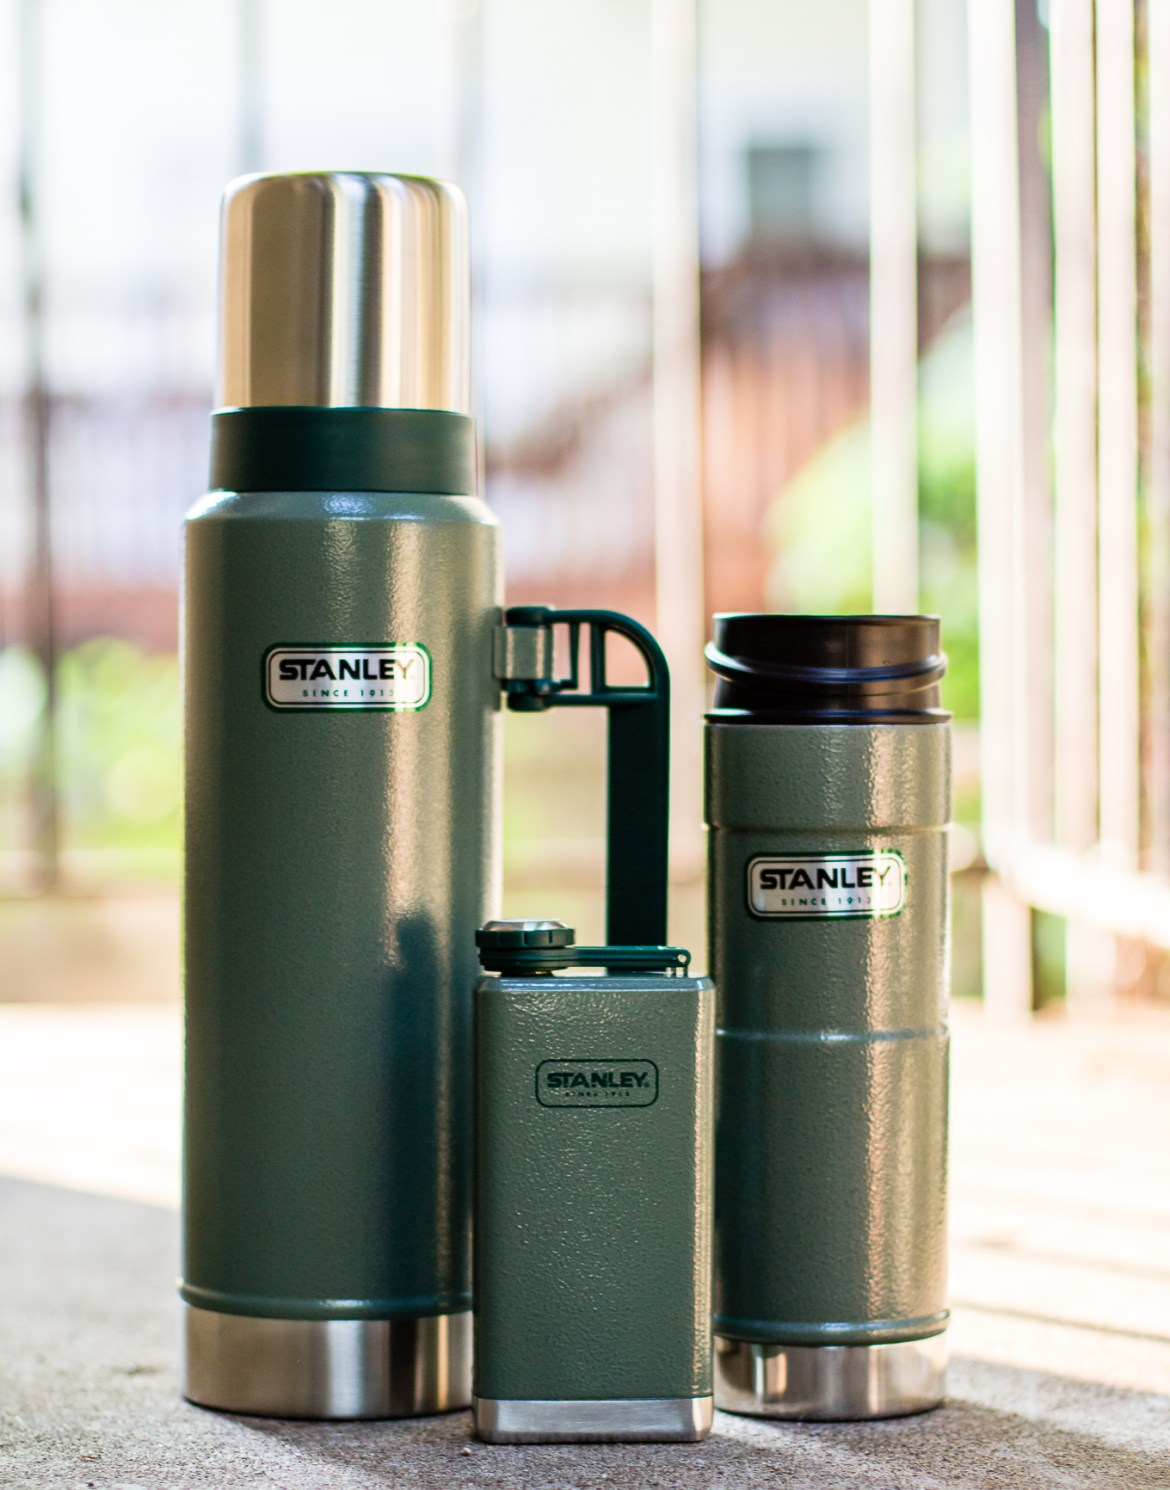 stanley, stanley brand, vacuum bottle, gifts for dad, fathers day gifts